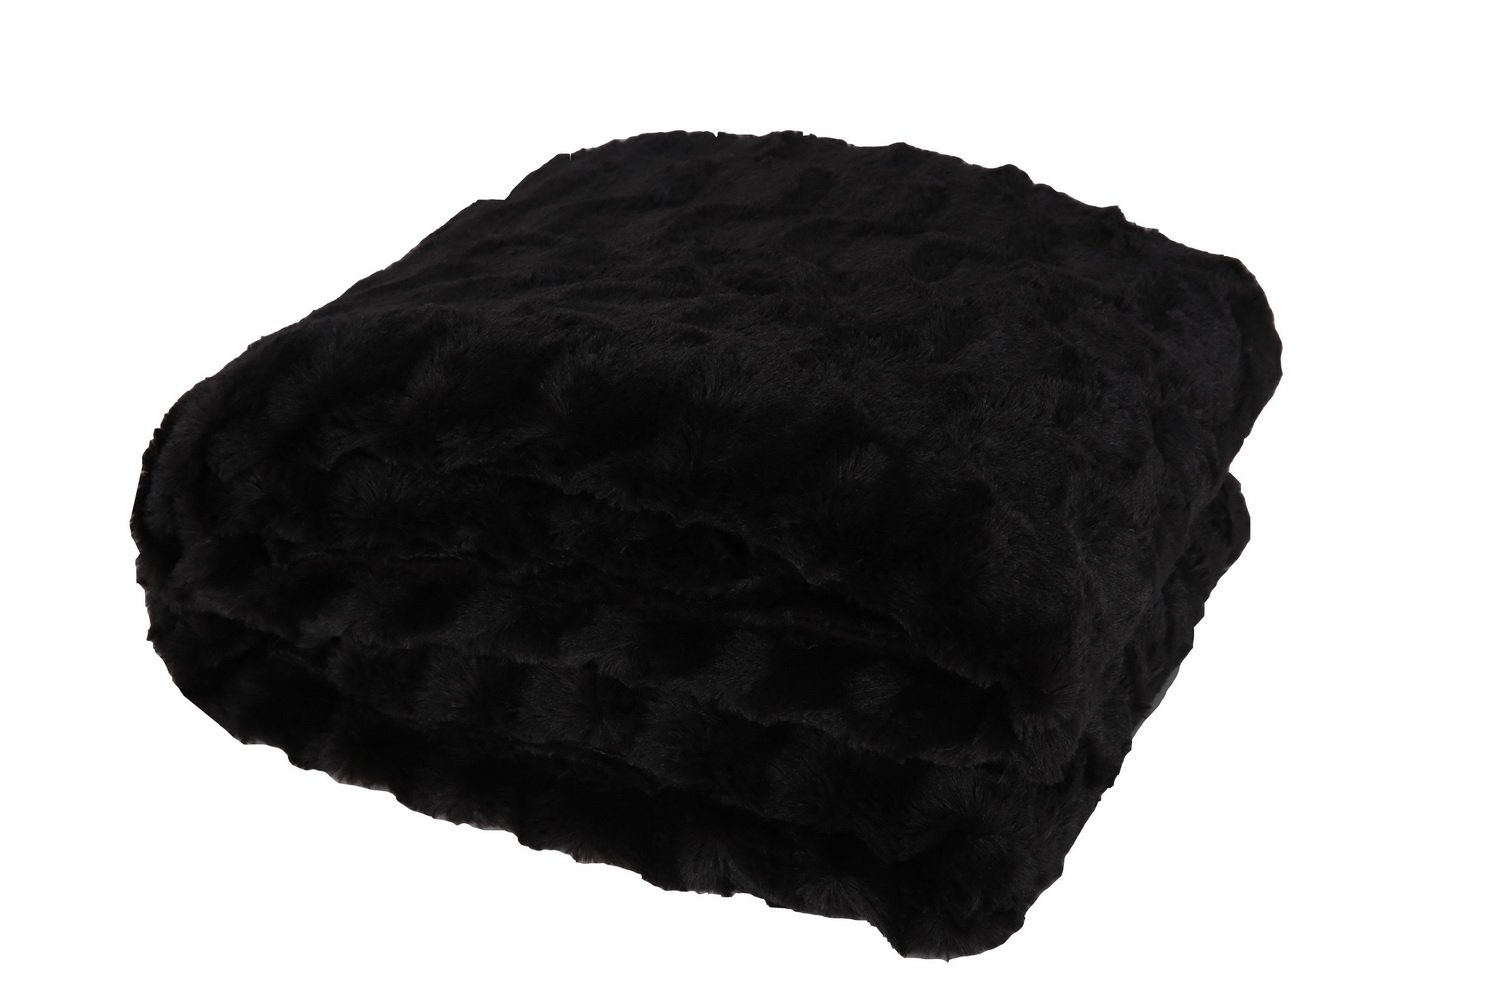 HappyCare Textiles Embossed Faux Fur Rev To Sherpa Throw Blanket, Dark Charcoal